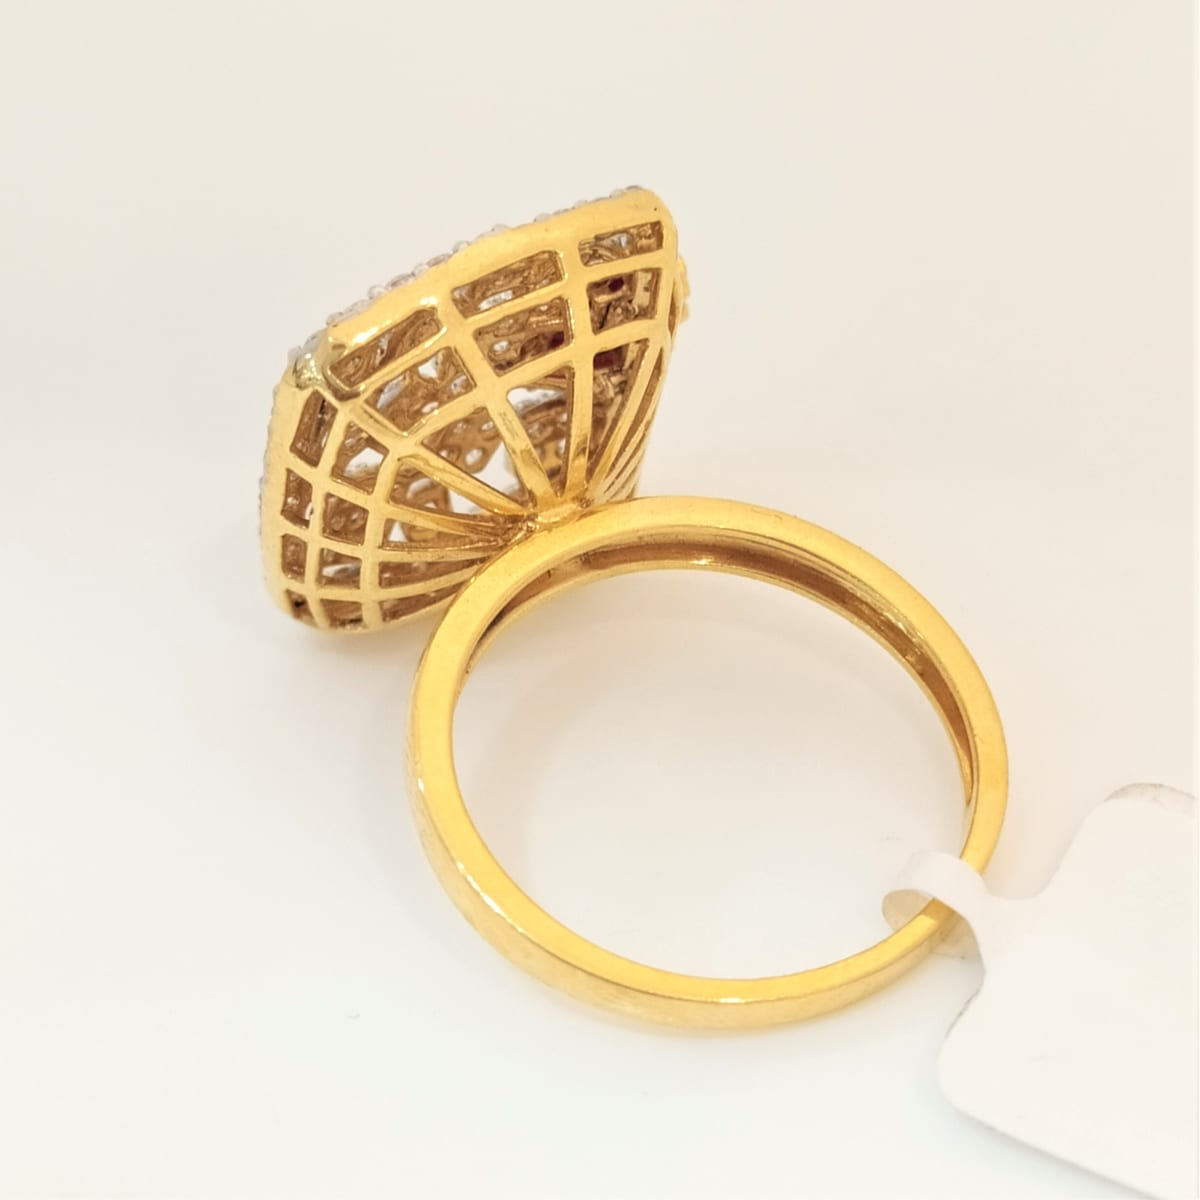 Rounded Square Cz Ring